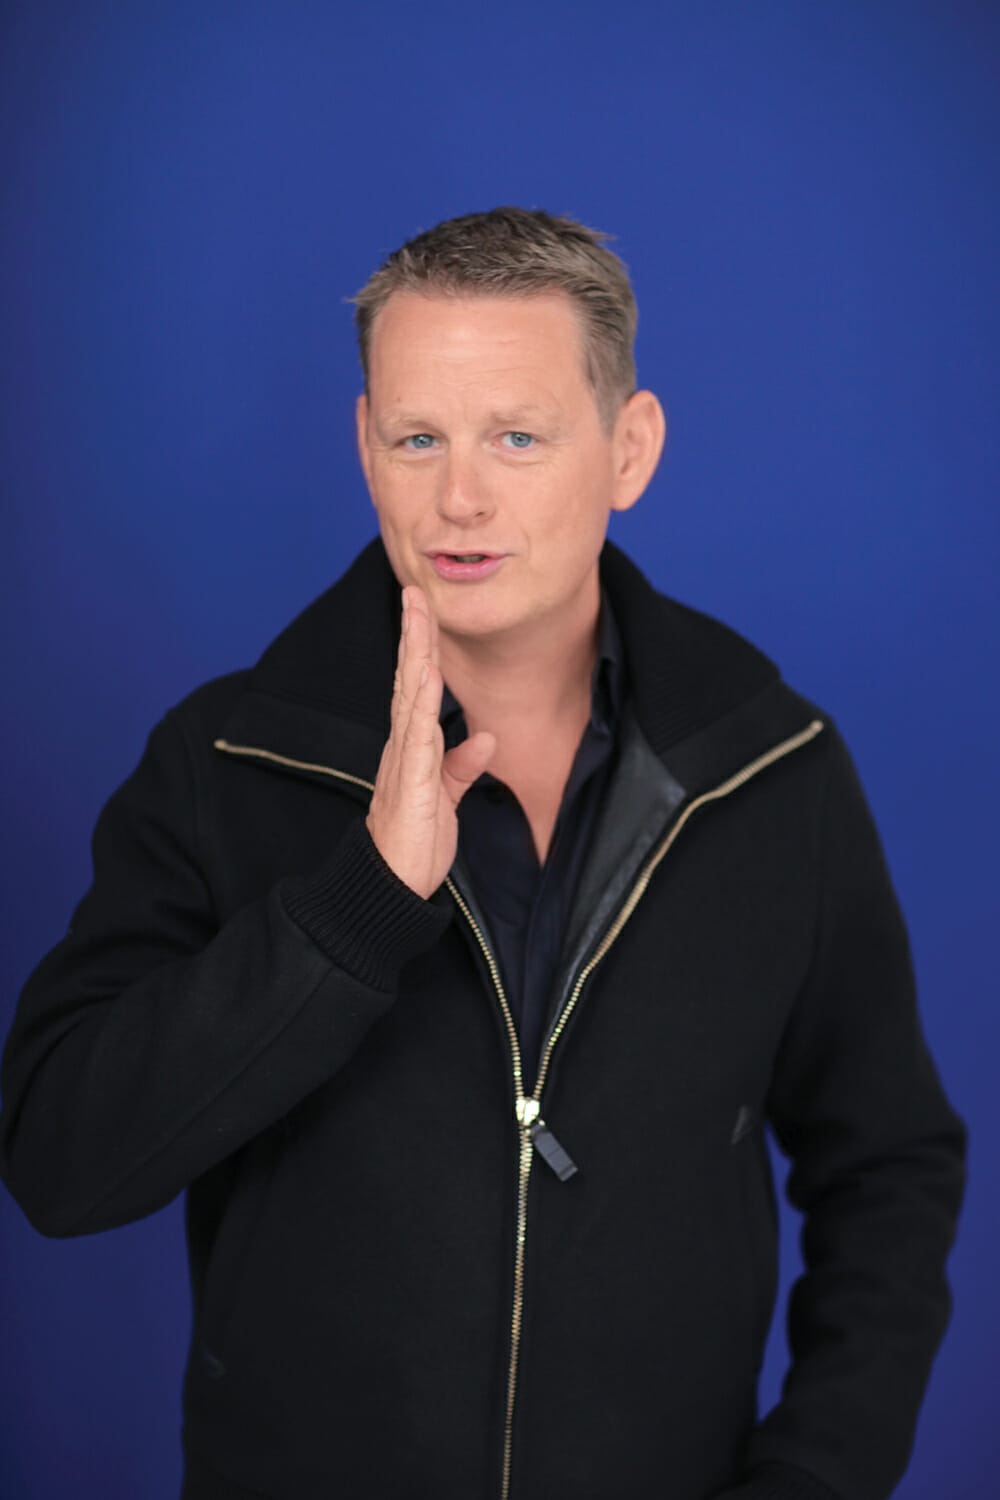 Martin Lindstrom portrait photography by John Abbot - Photo Library